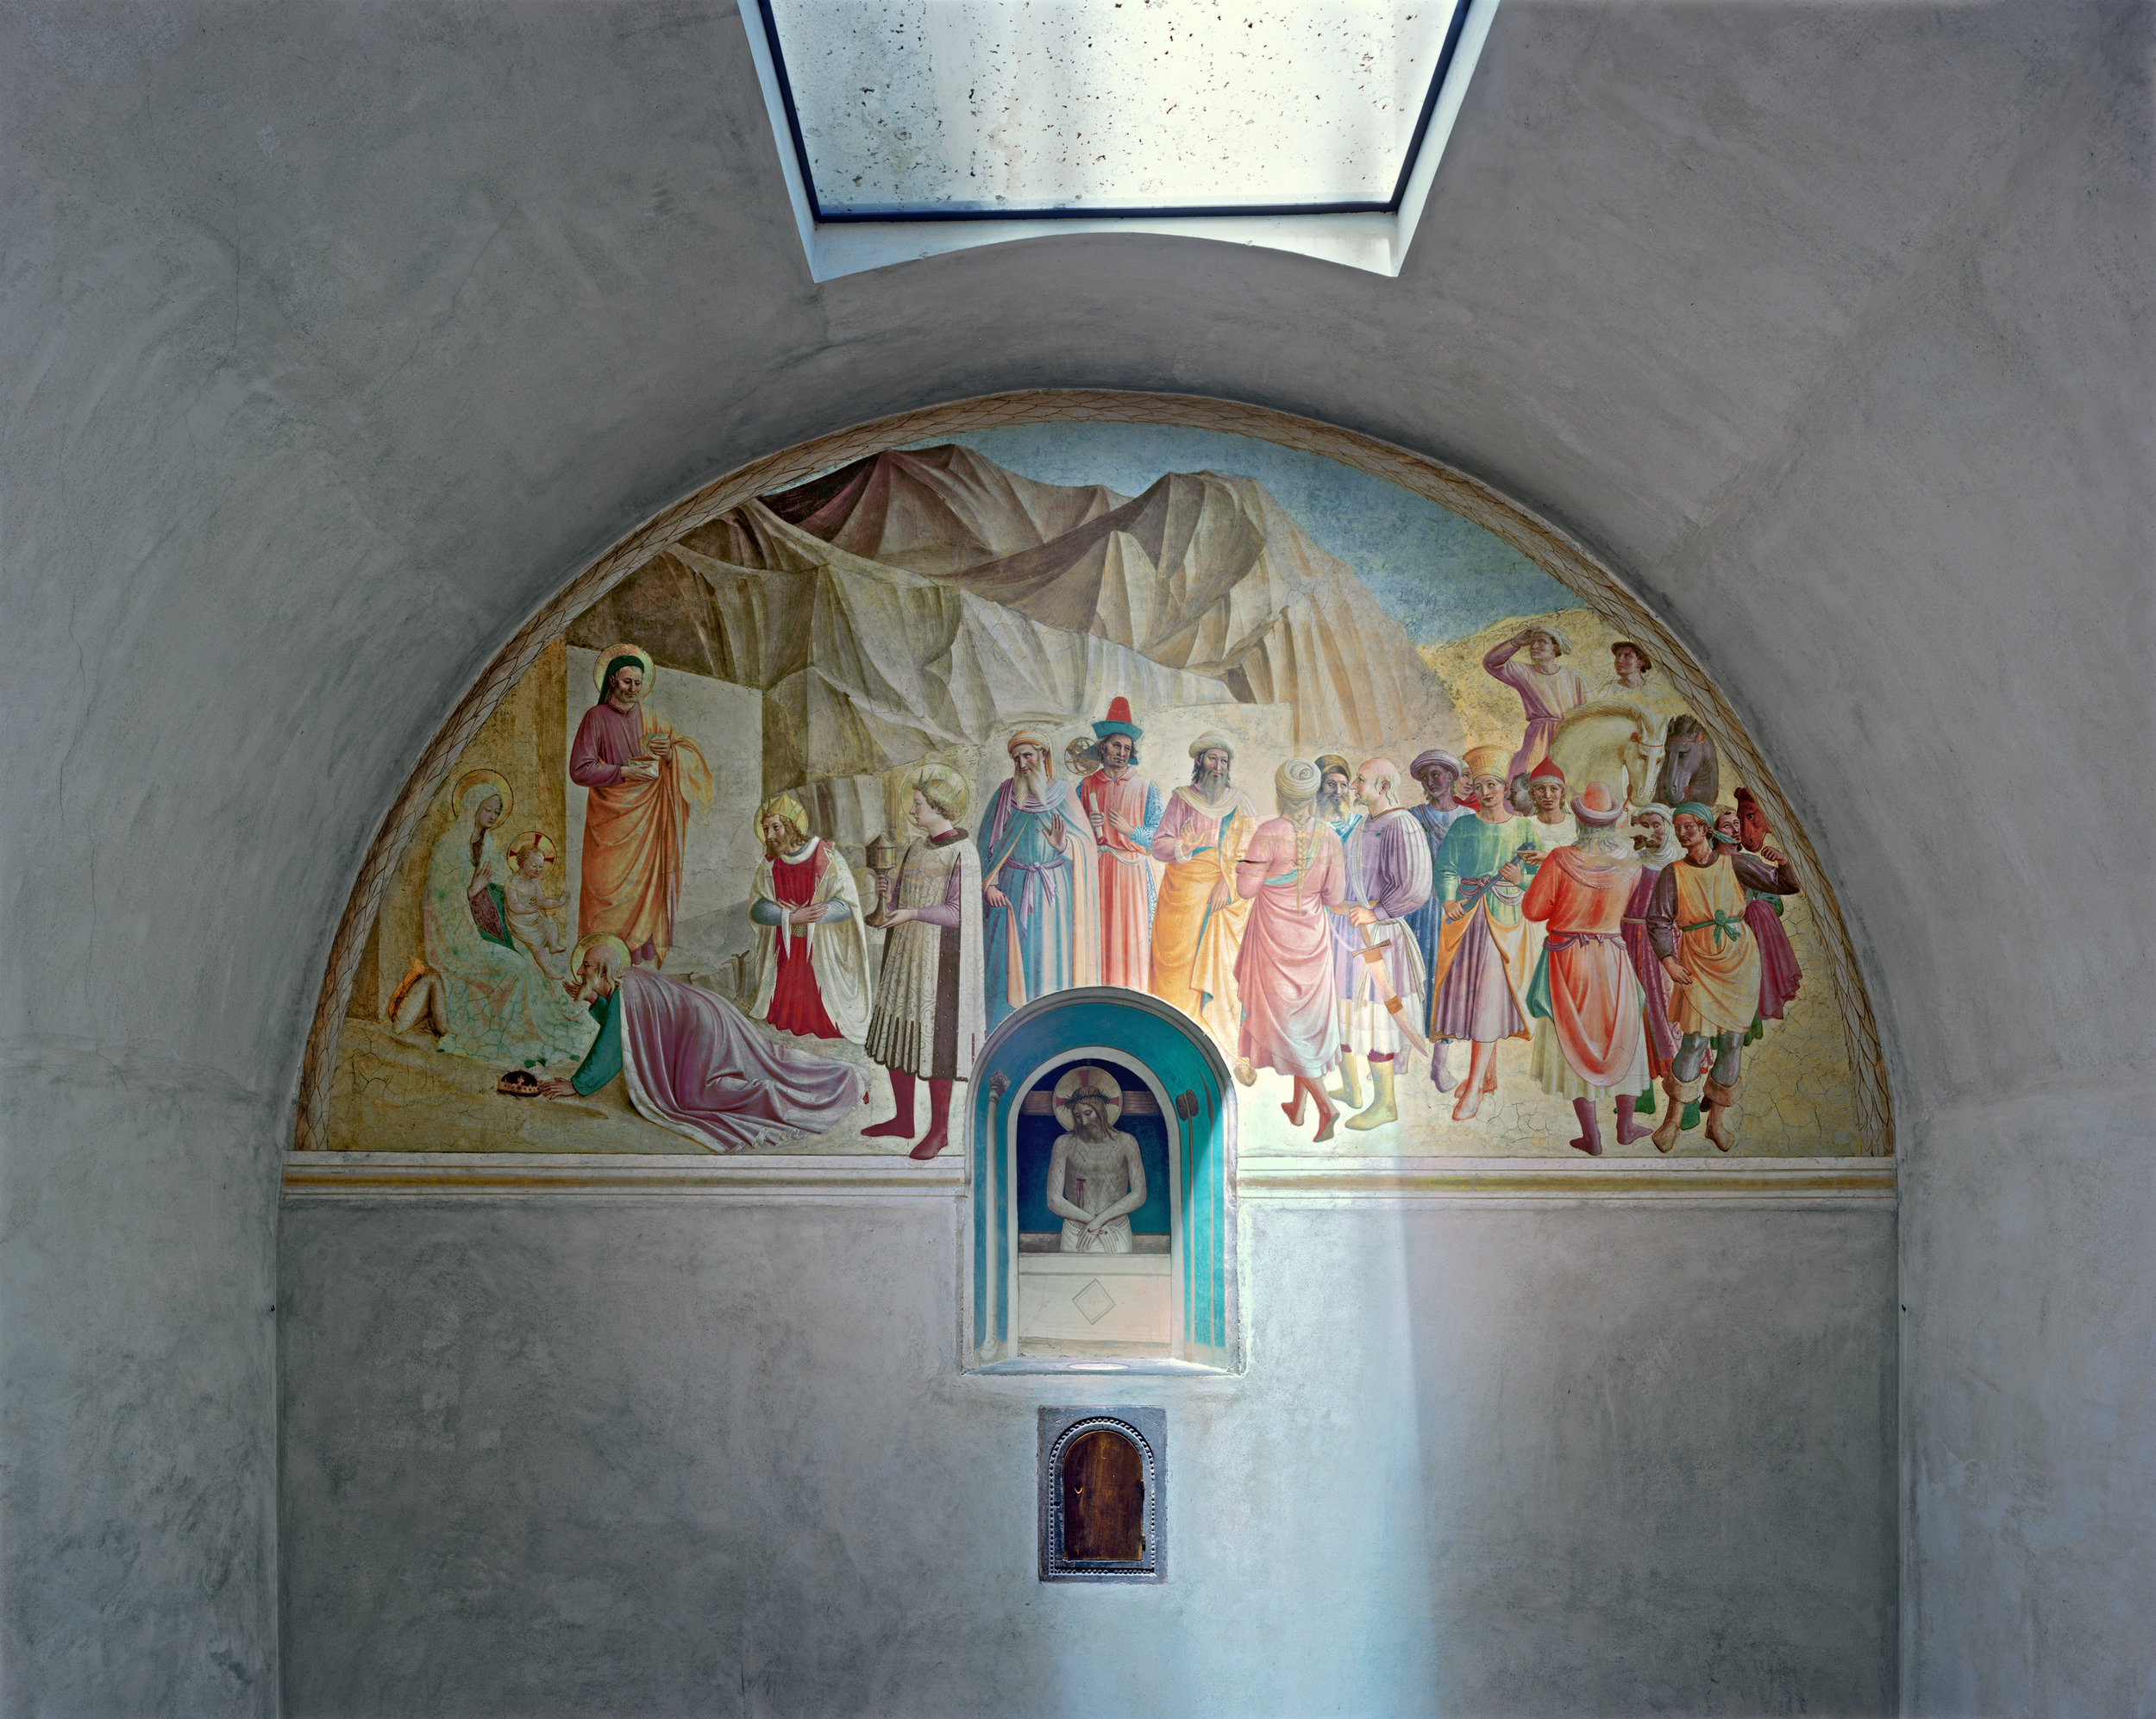 Crucifixion with the Virgin and Saints by Fra Angelico #3, San Marco Convent, Florence, Italy, 2010 © Robert Polidori, Courtesy of Paul Kasmin Gallery